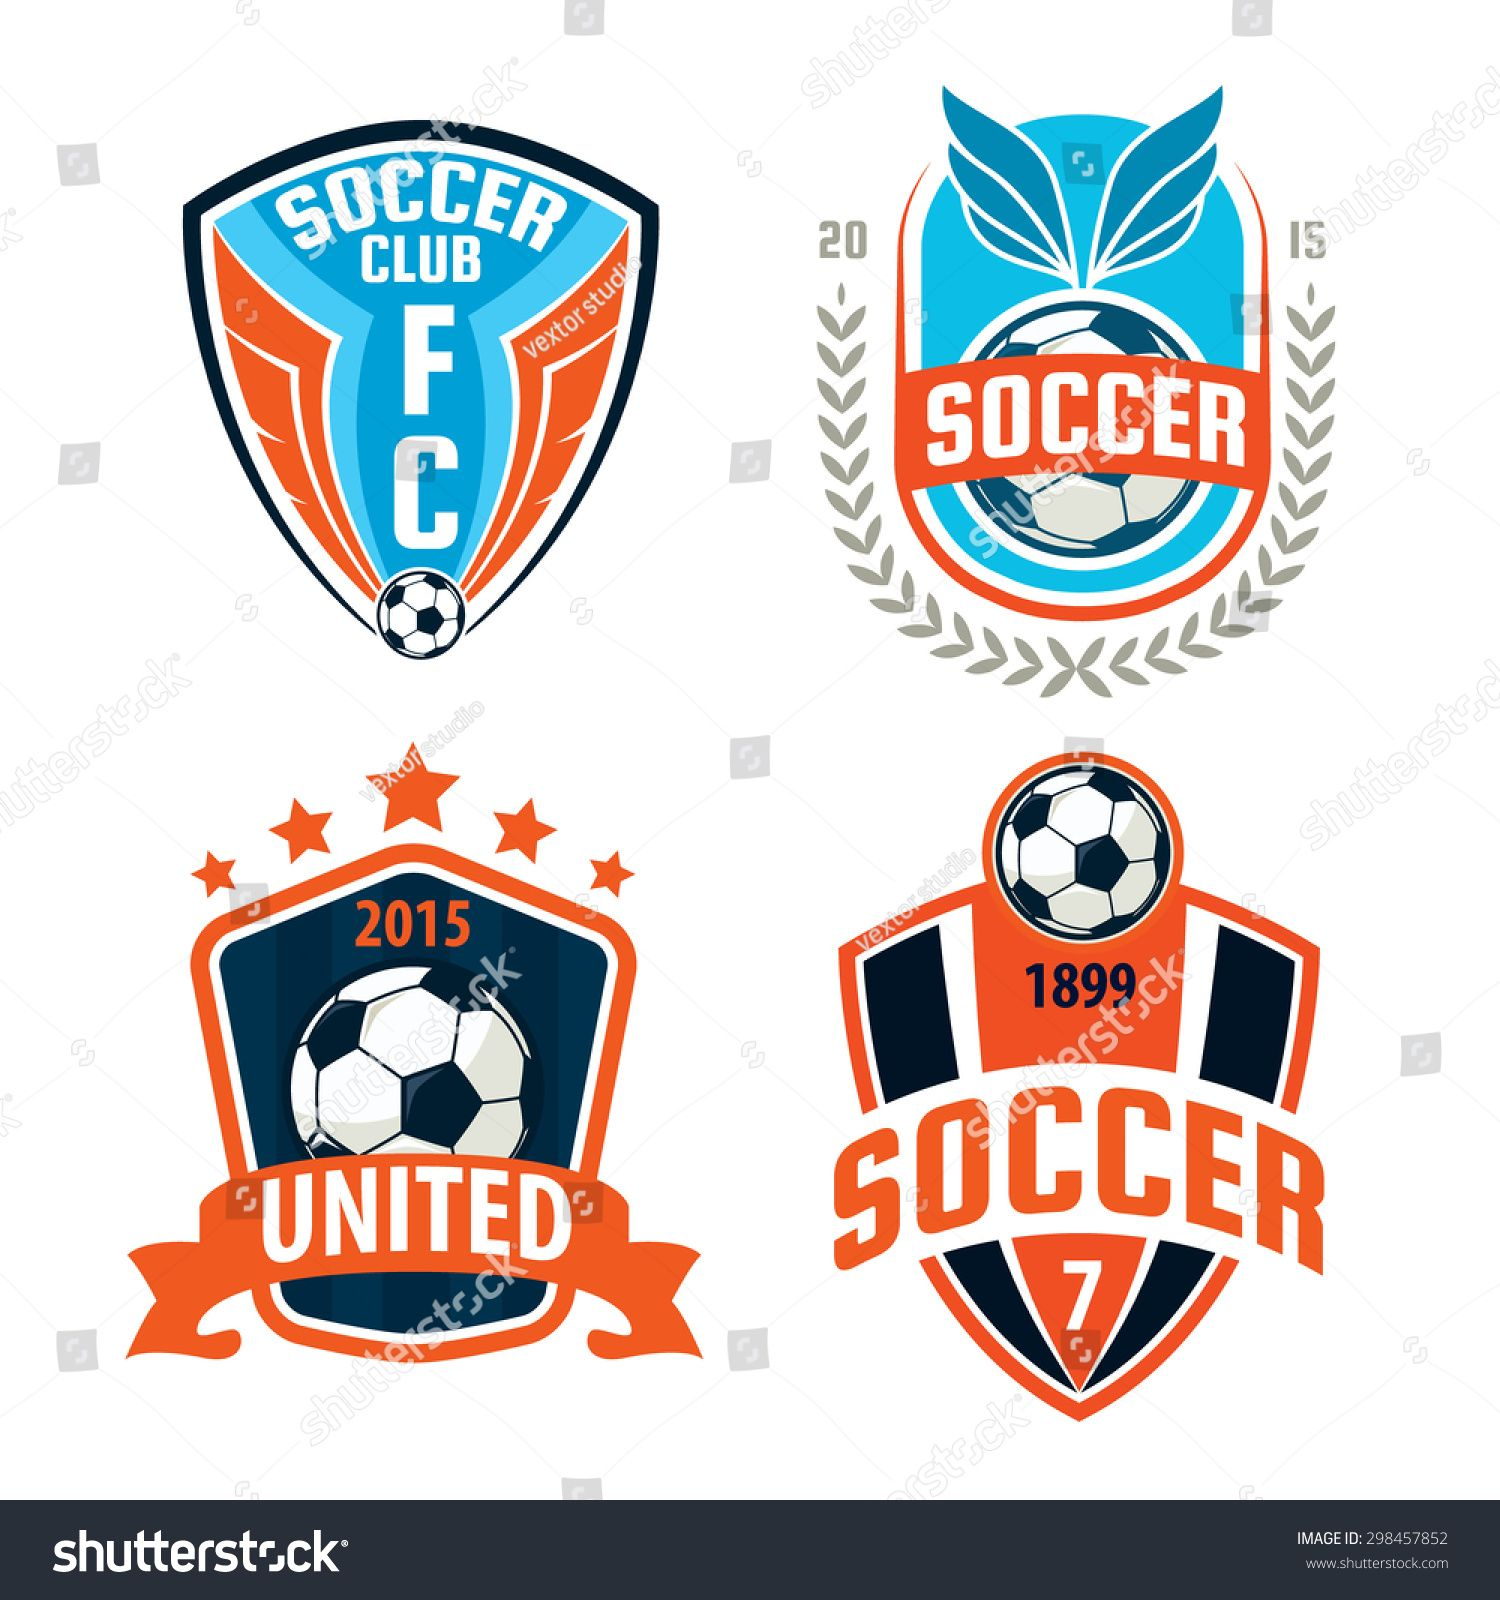 Soccer crest template clipart graphic black and white download Football badge logo template design,soccer team,vector ... graphic black and white download